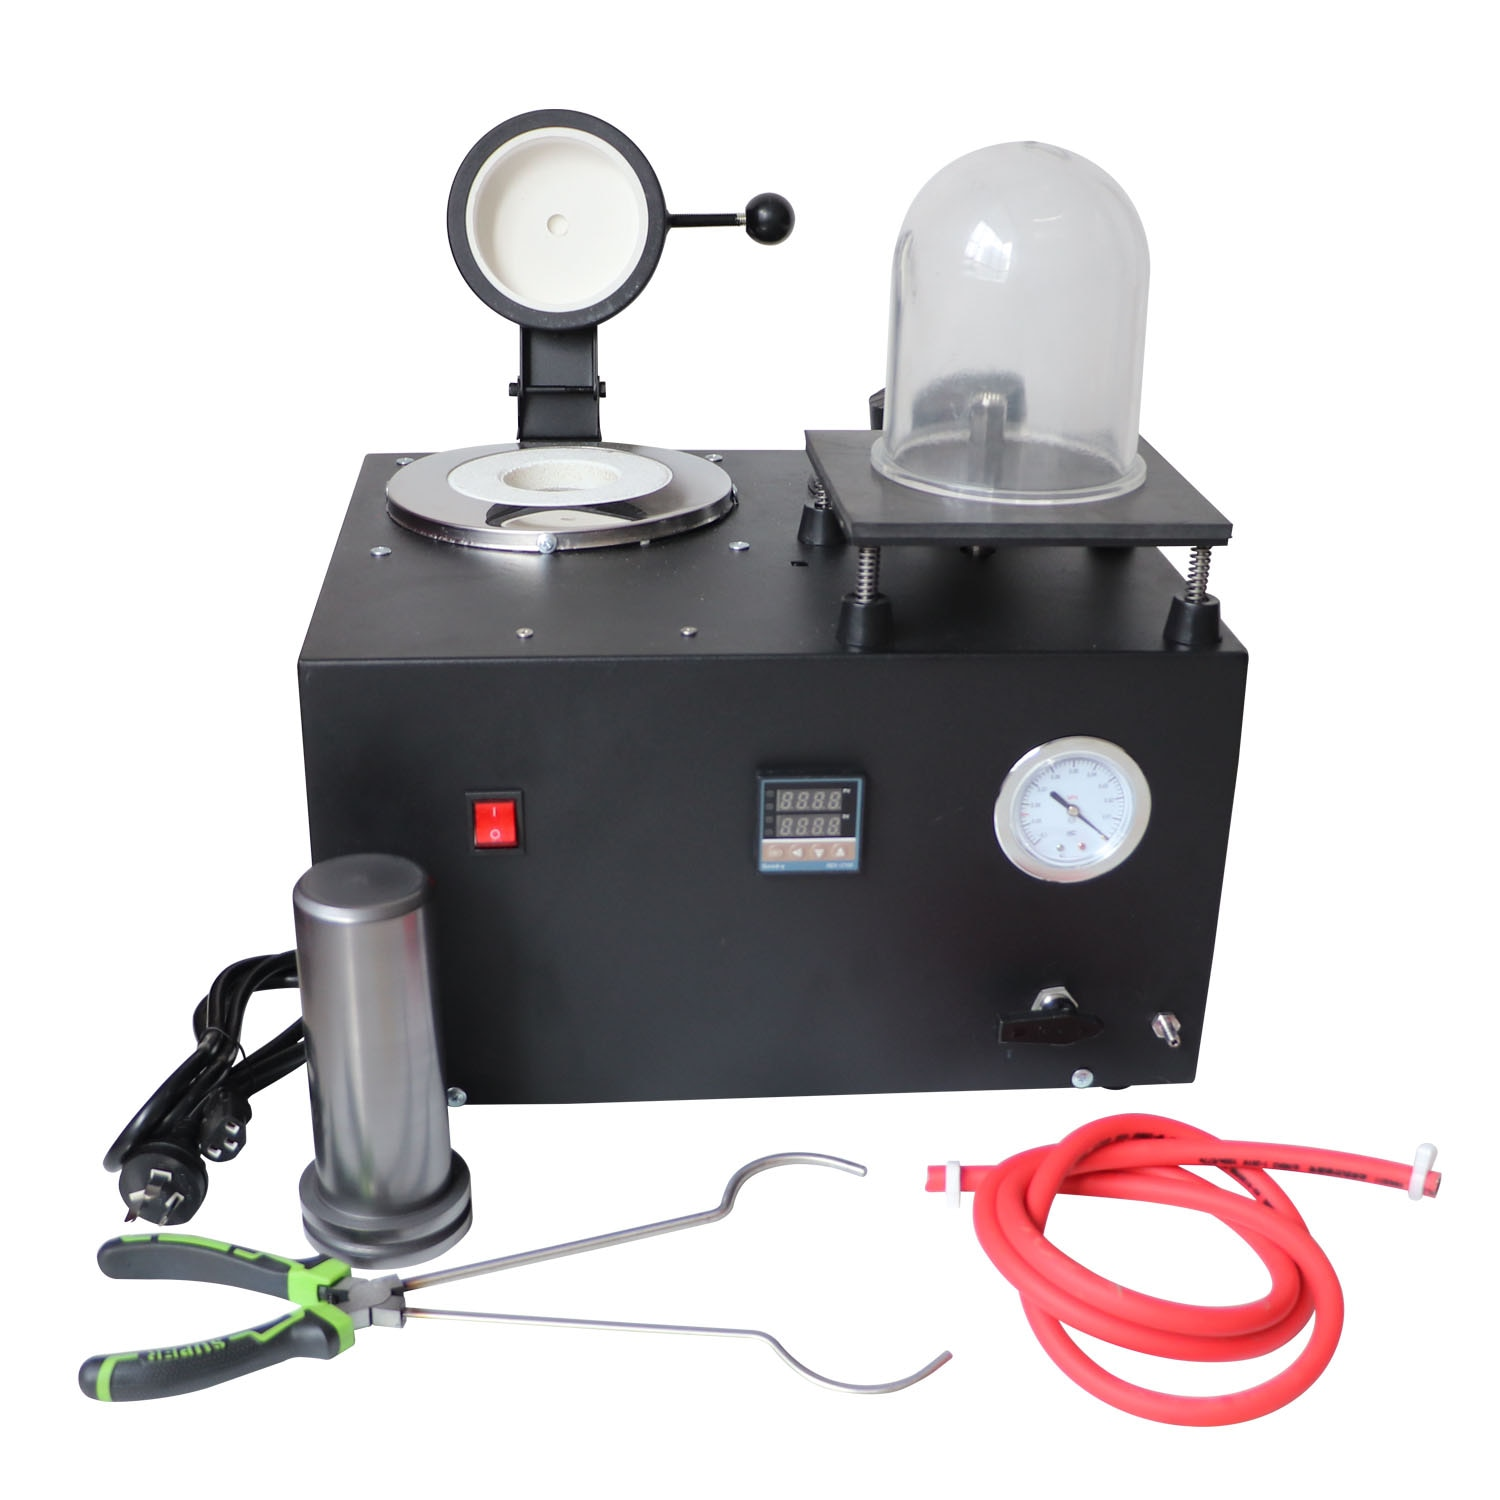 110V/220V 1-3kg Casting and Smelting Machine Large Digital Display High Temperature Refining Precious Metal Gold and Silver